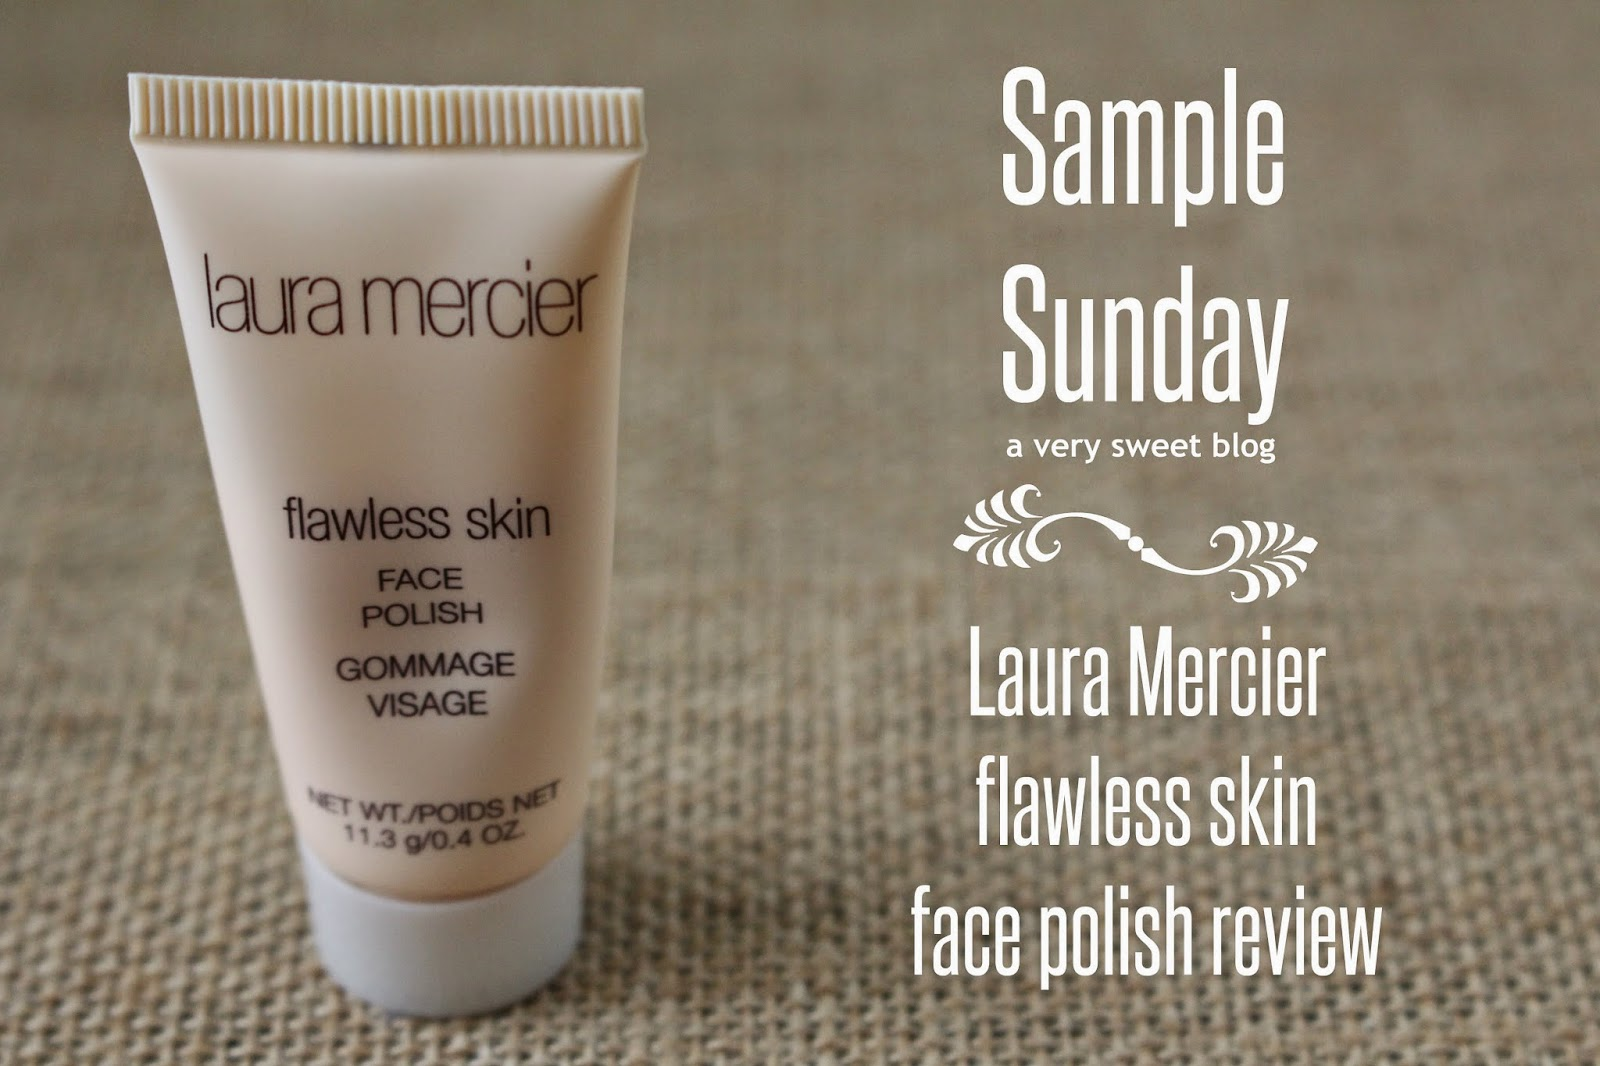 Skin Sample SundayLaura Mercier PolishA Very Flawless Face 8n0wOPk